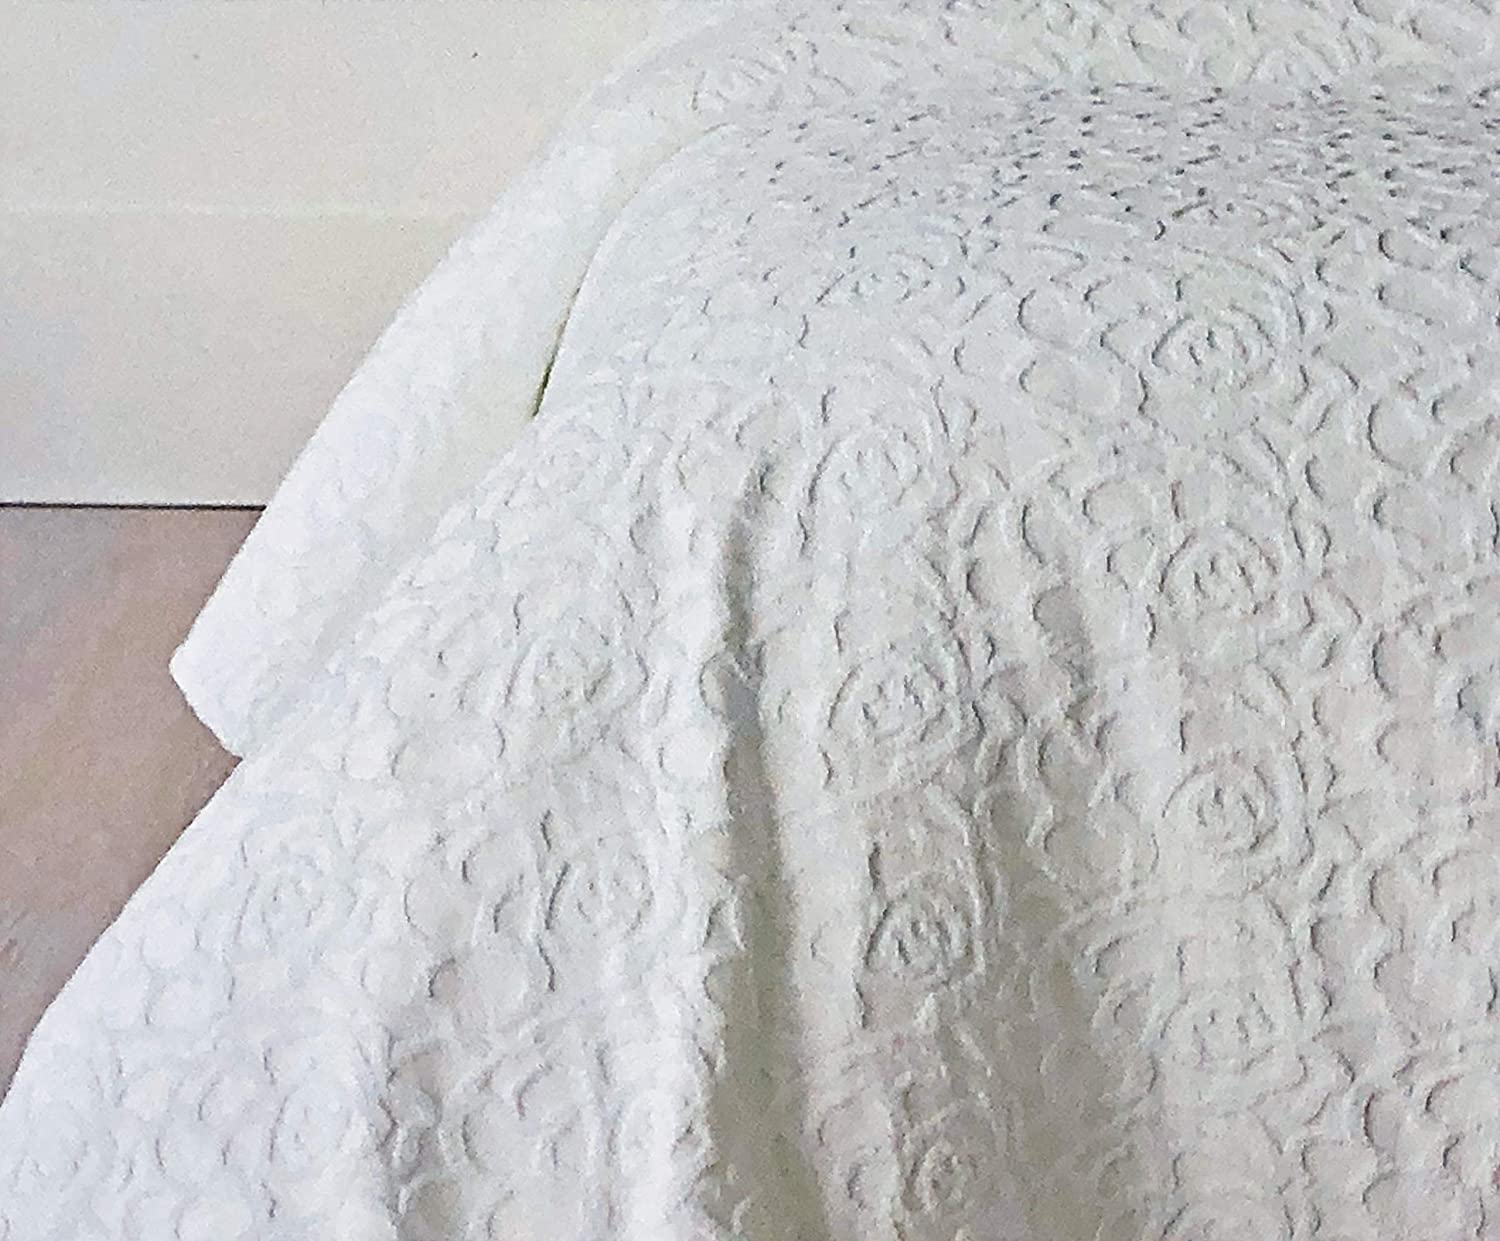 Piu Belle Portugal Bedding Luxurious Queen Size Bed Textured Matelasse Coverlet Solid White With Geometric Textured